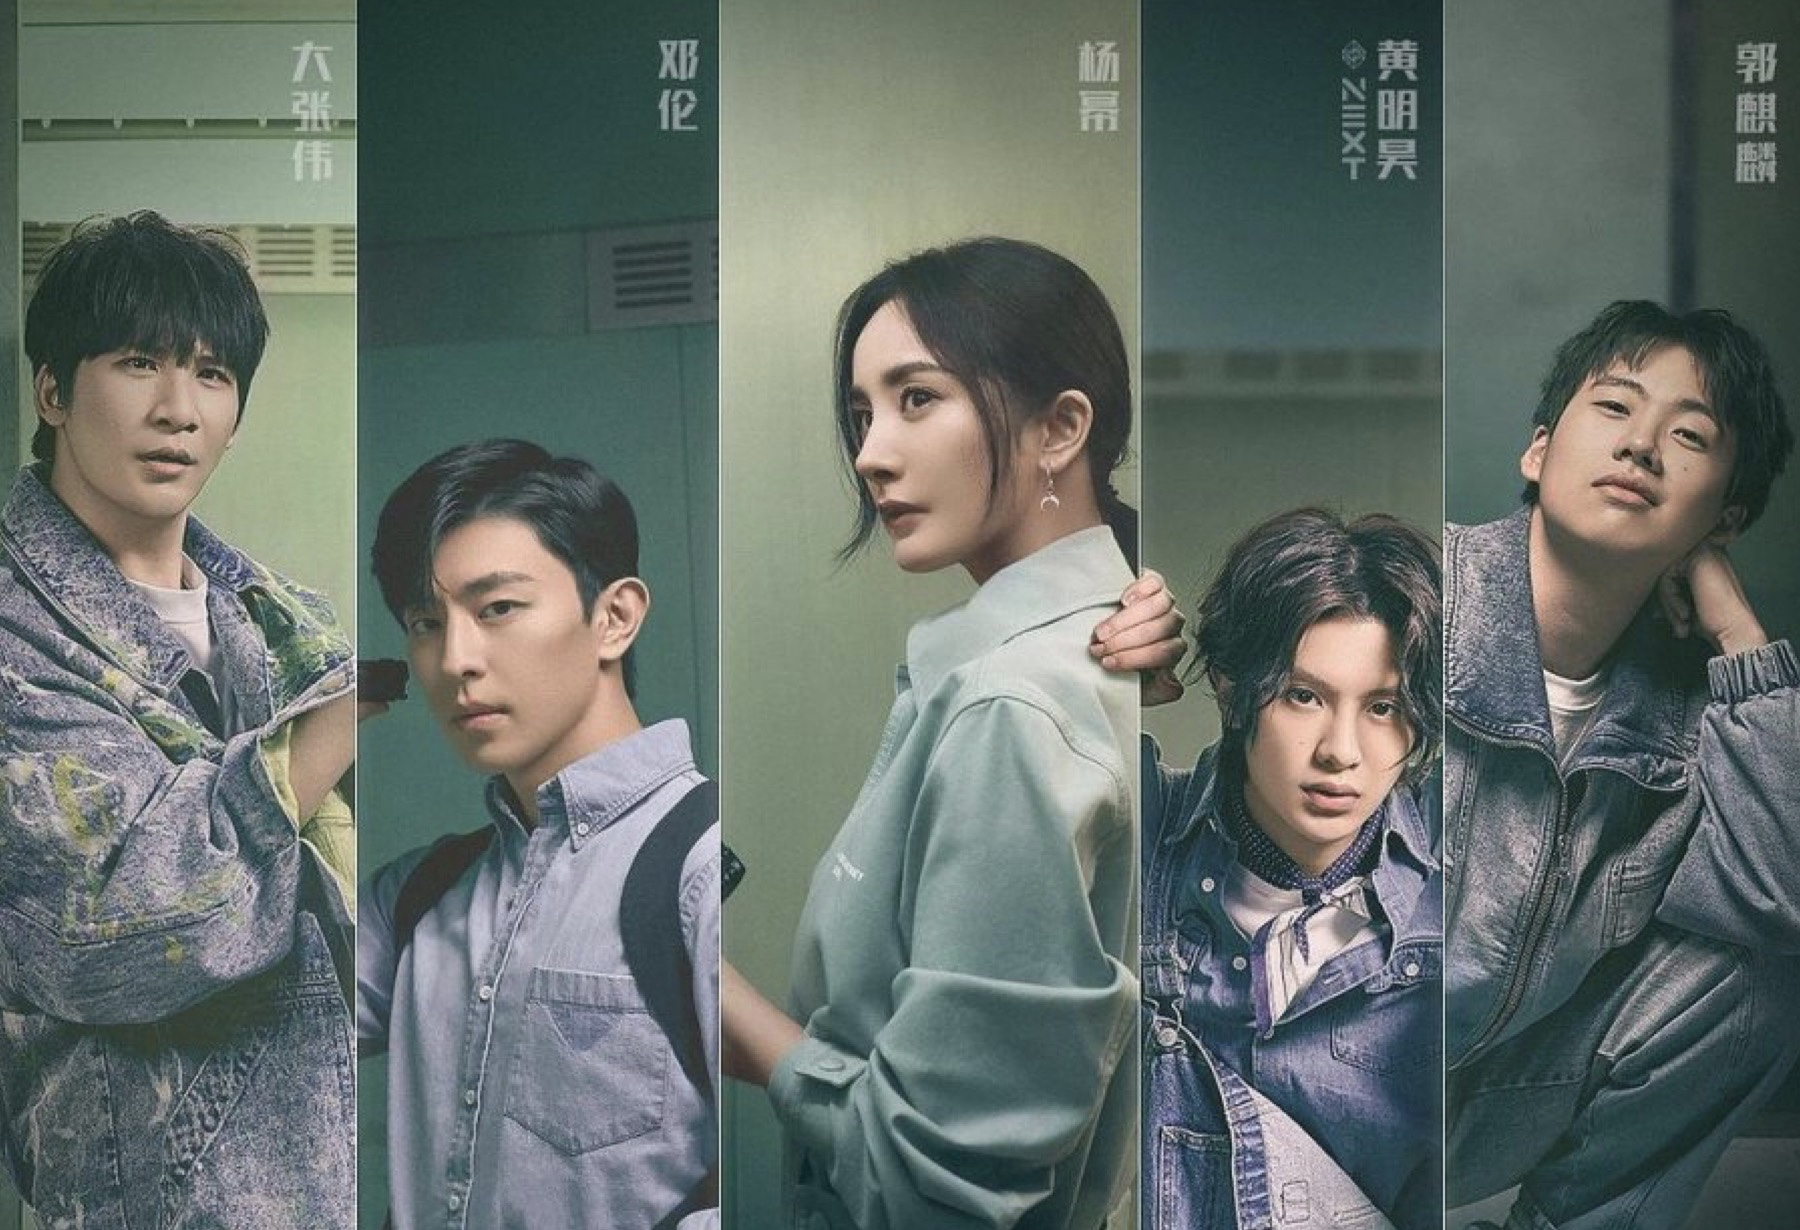 Great Escape Season 2 Cast 密室大逃脱 2